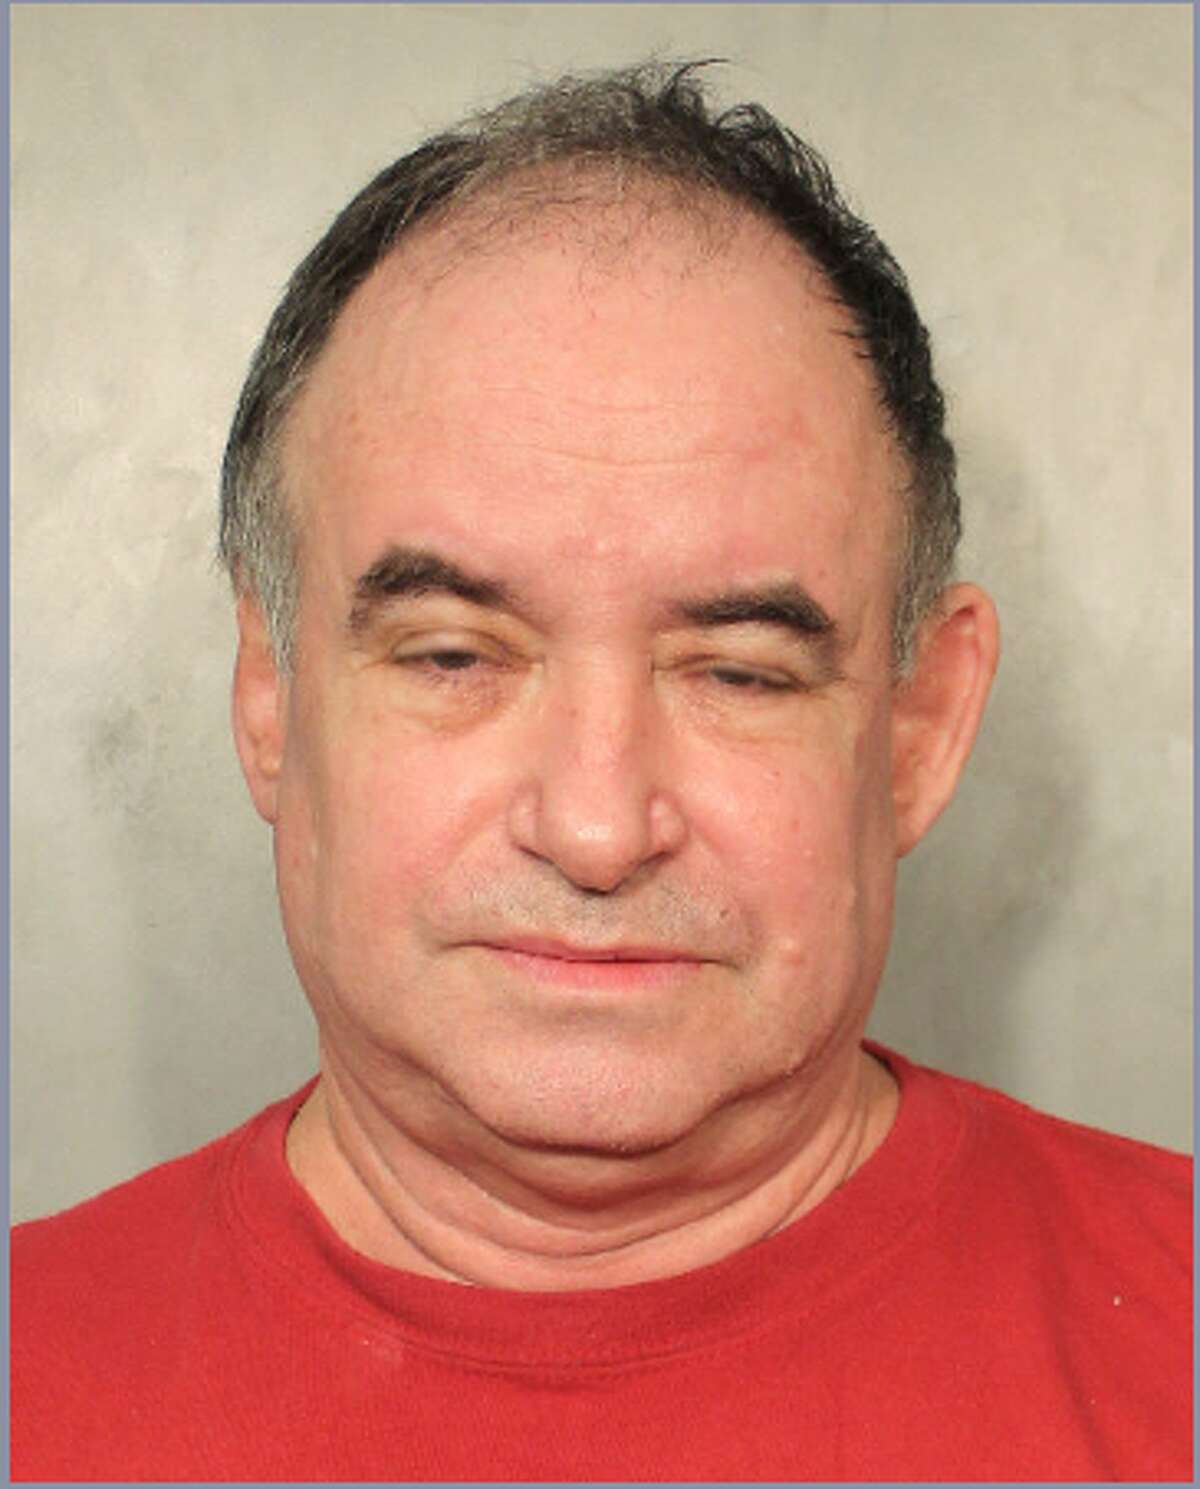 Paul David Cole was arrested on indecent exposure charge.